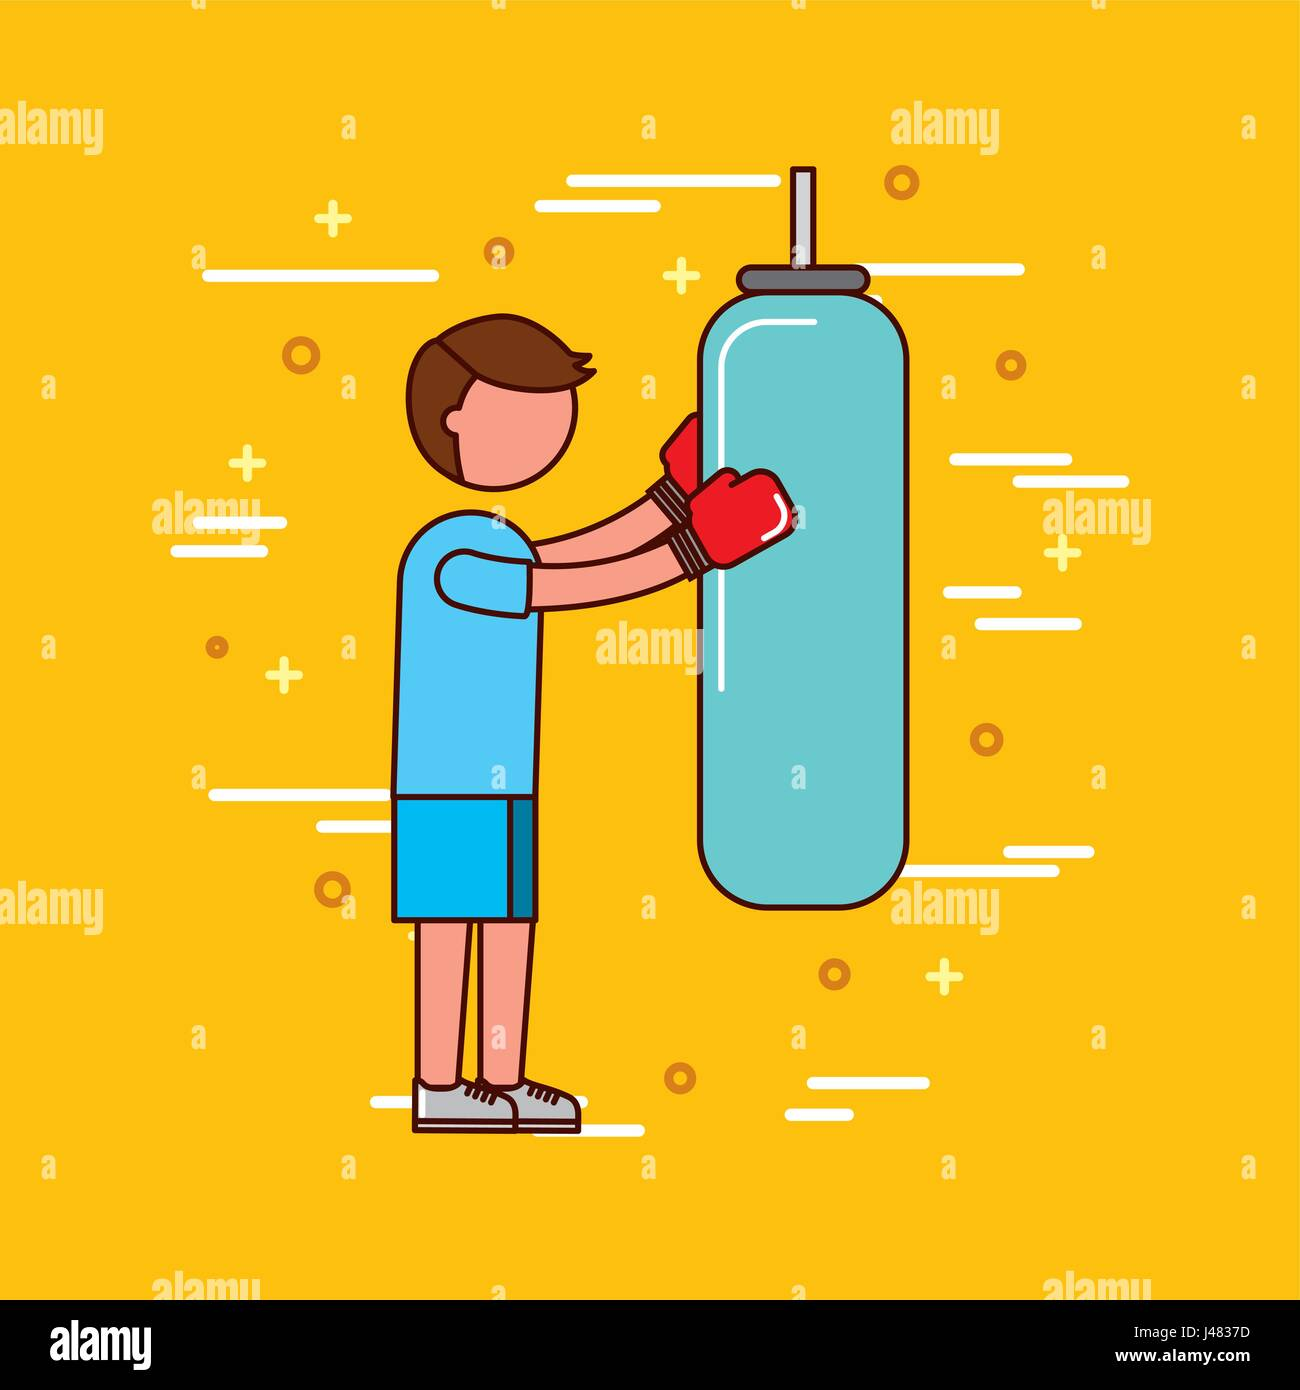 sports or exercise image - Stock Vector